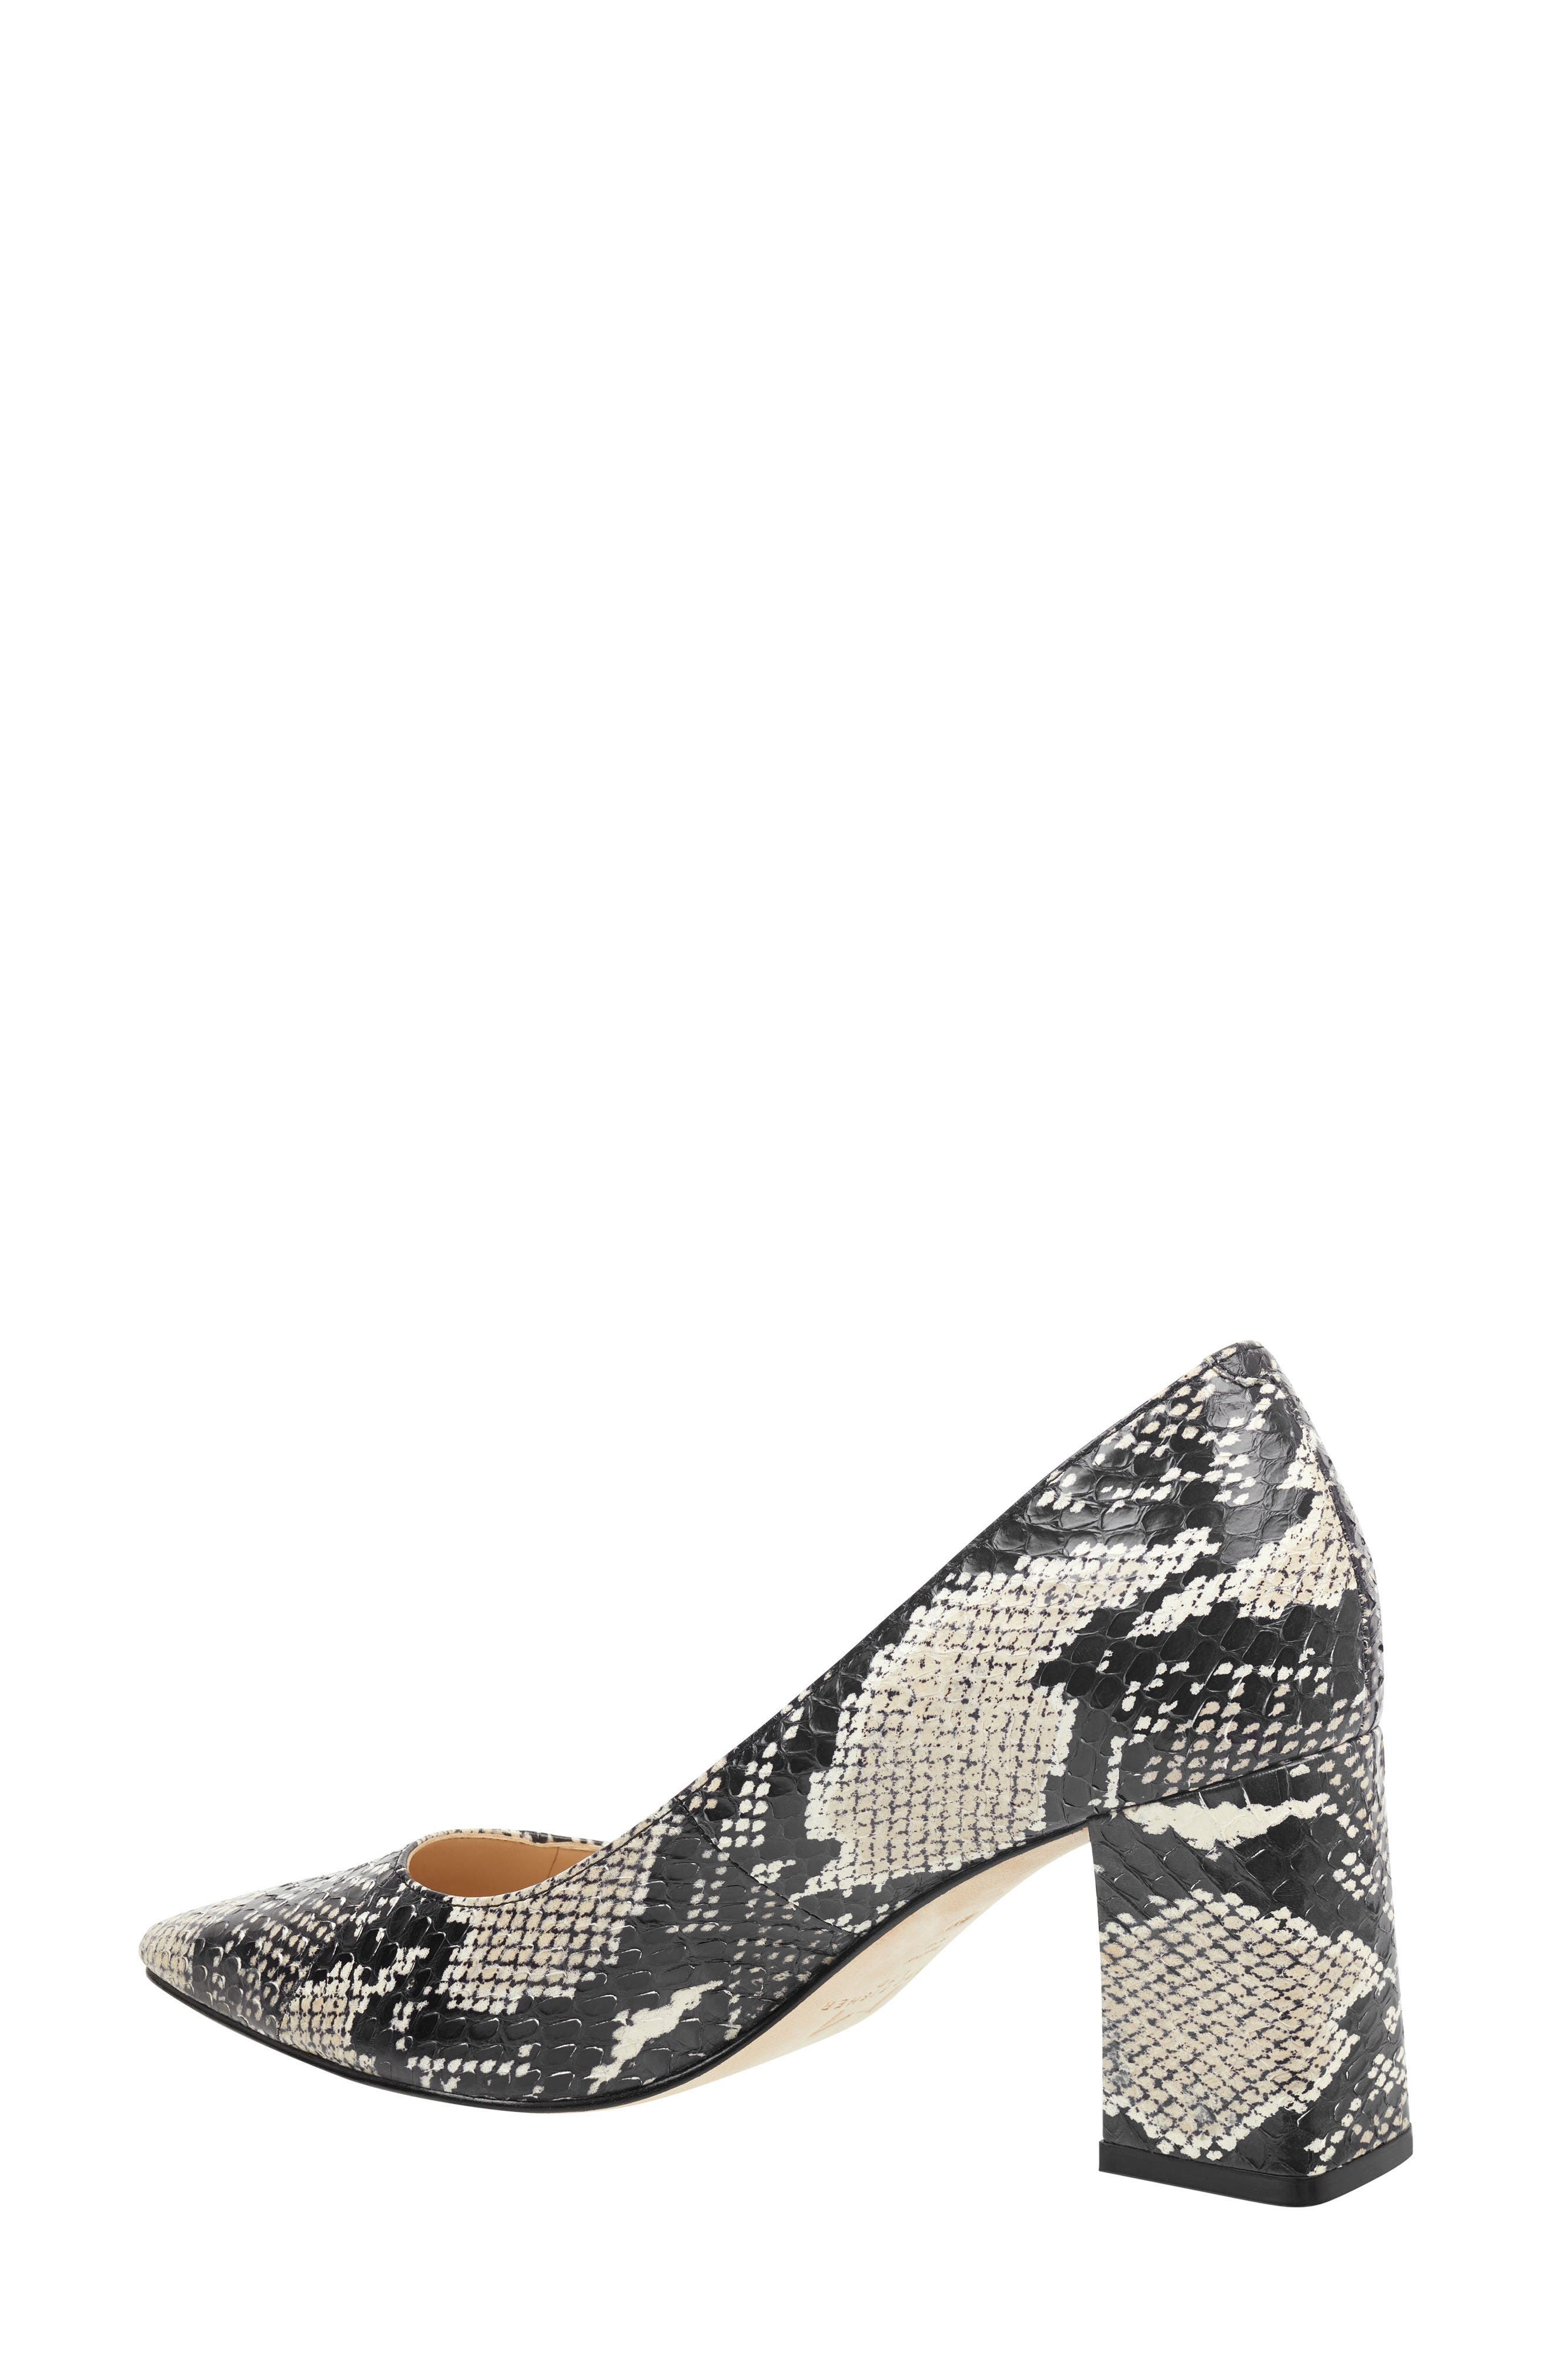 'Zala' Pump,                             Alternate thumbnail 2, color,                             BEIGE/ BLACK SNAKE PRINT